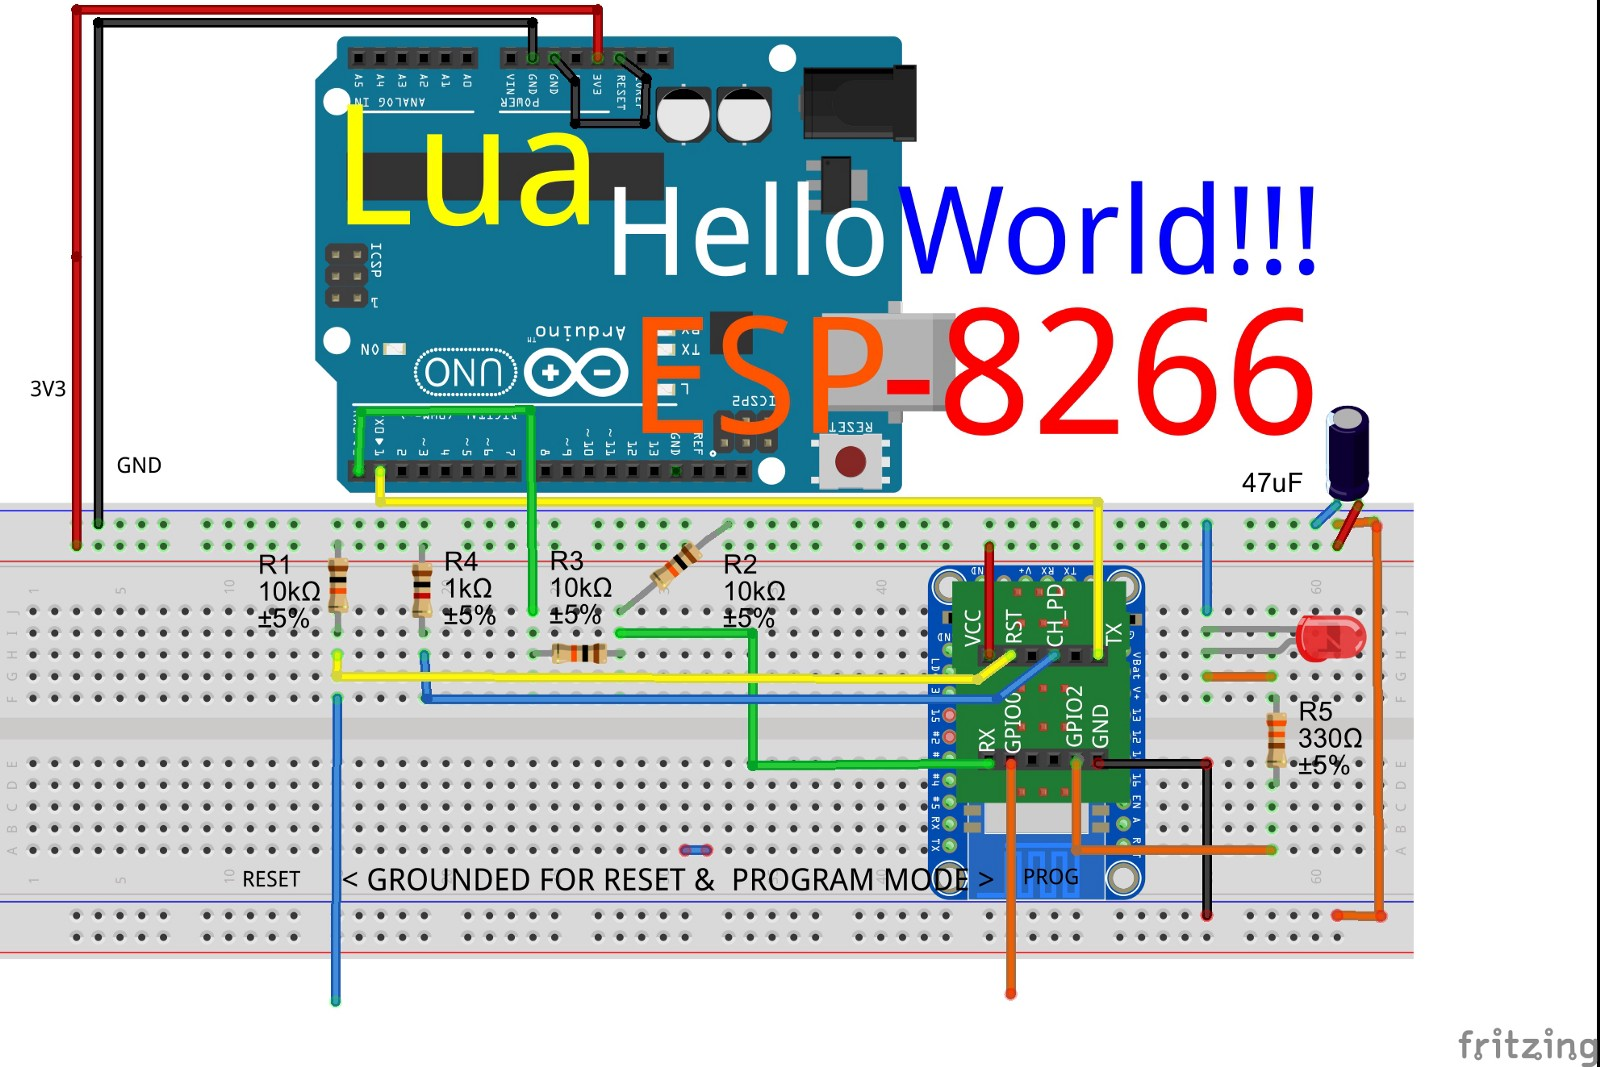 Your First Nodemcu Lua Script Flash On Esp8266 Jungletronics You Now Have A Simple Flashing Led Circuit Here Is The Schematic To New Firmware Need